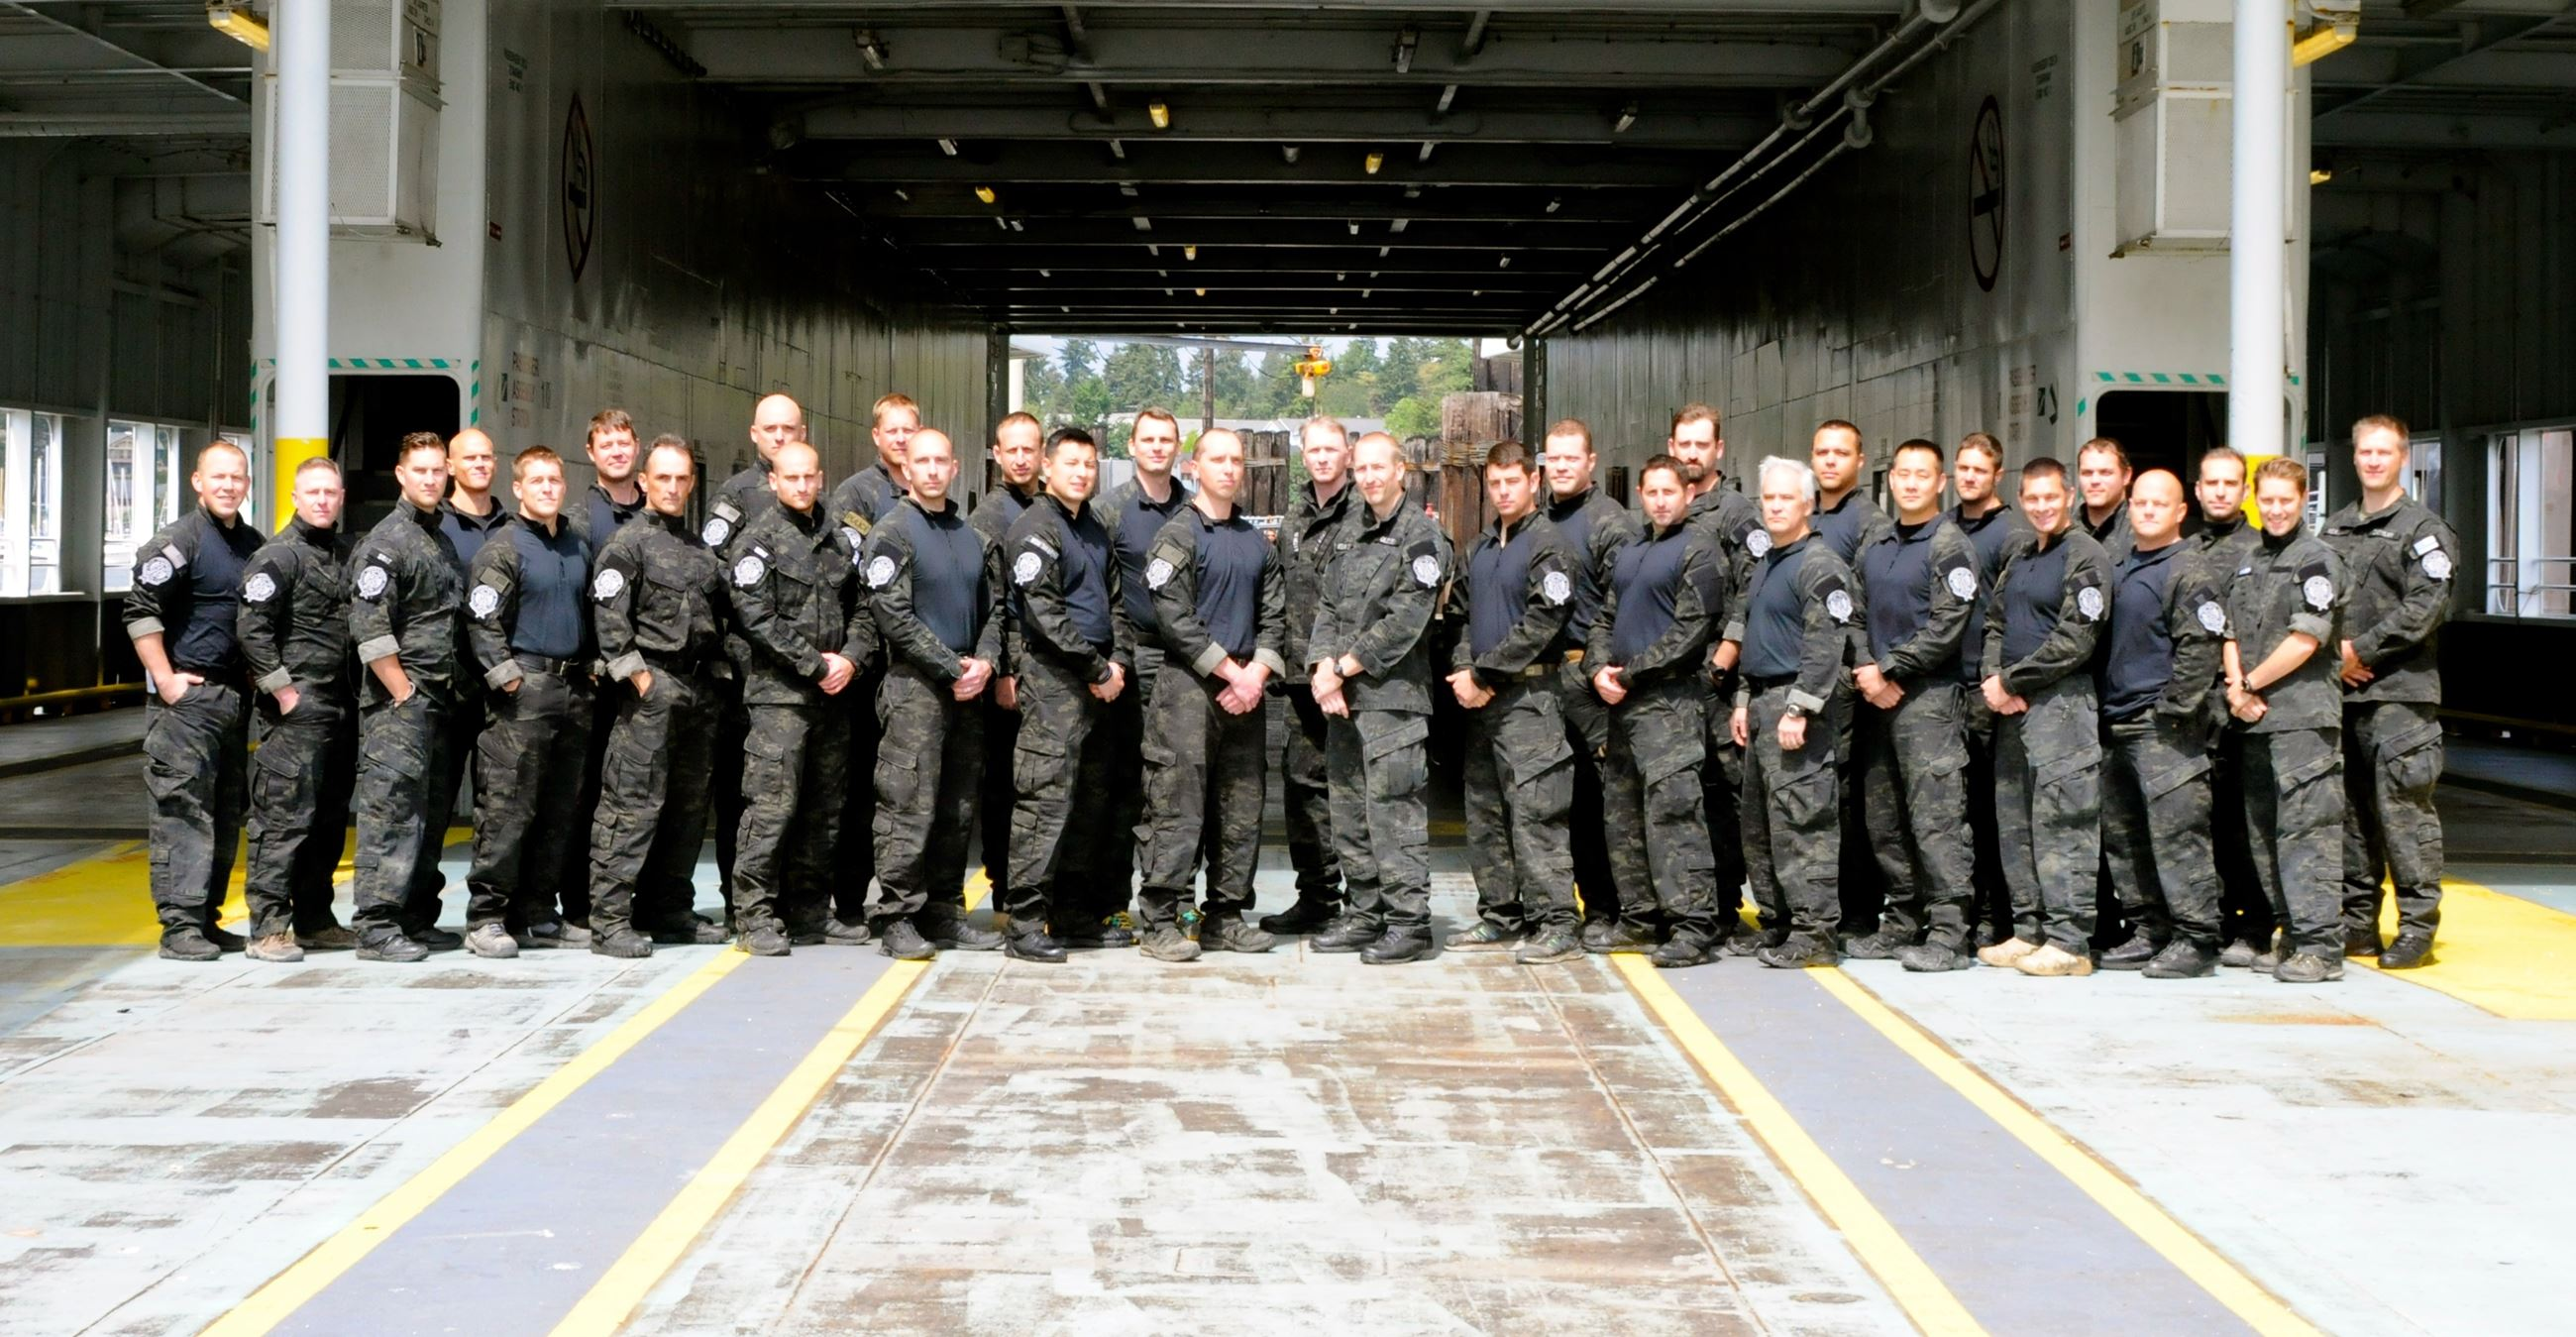 SWAT Team Photo in